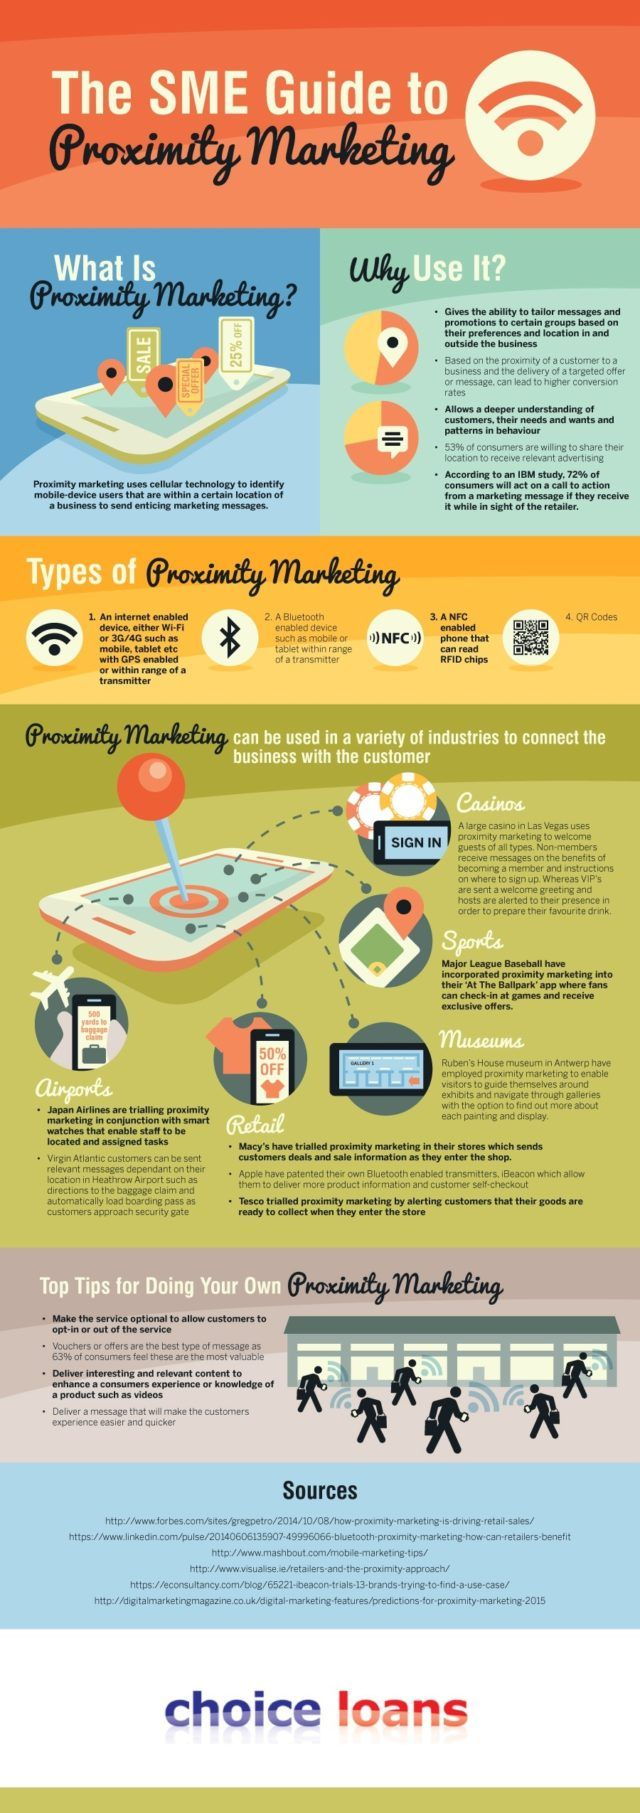 What is Proximity Marketing